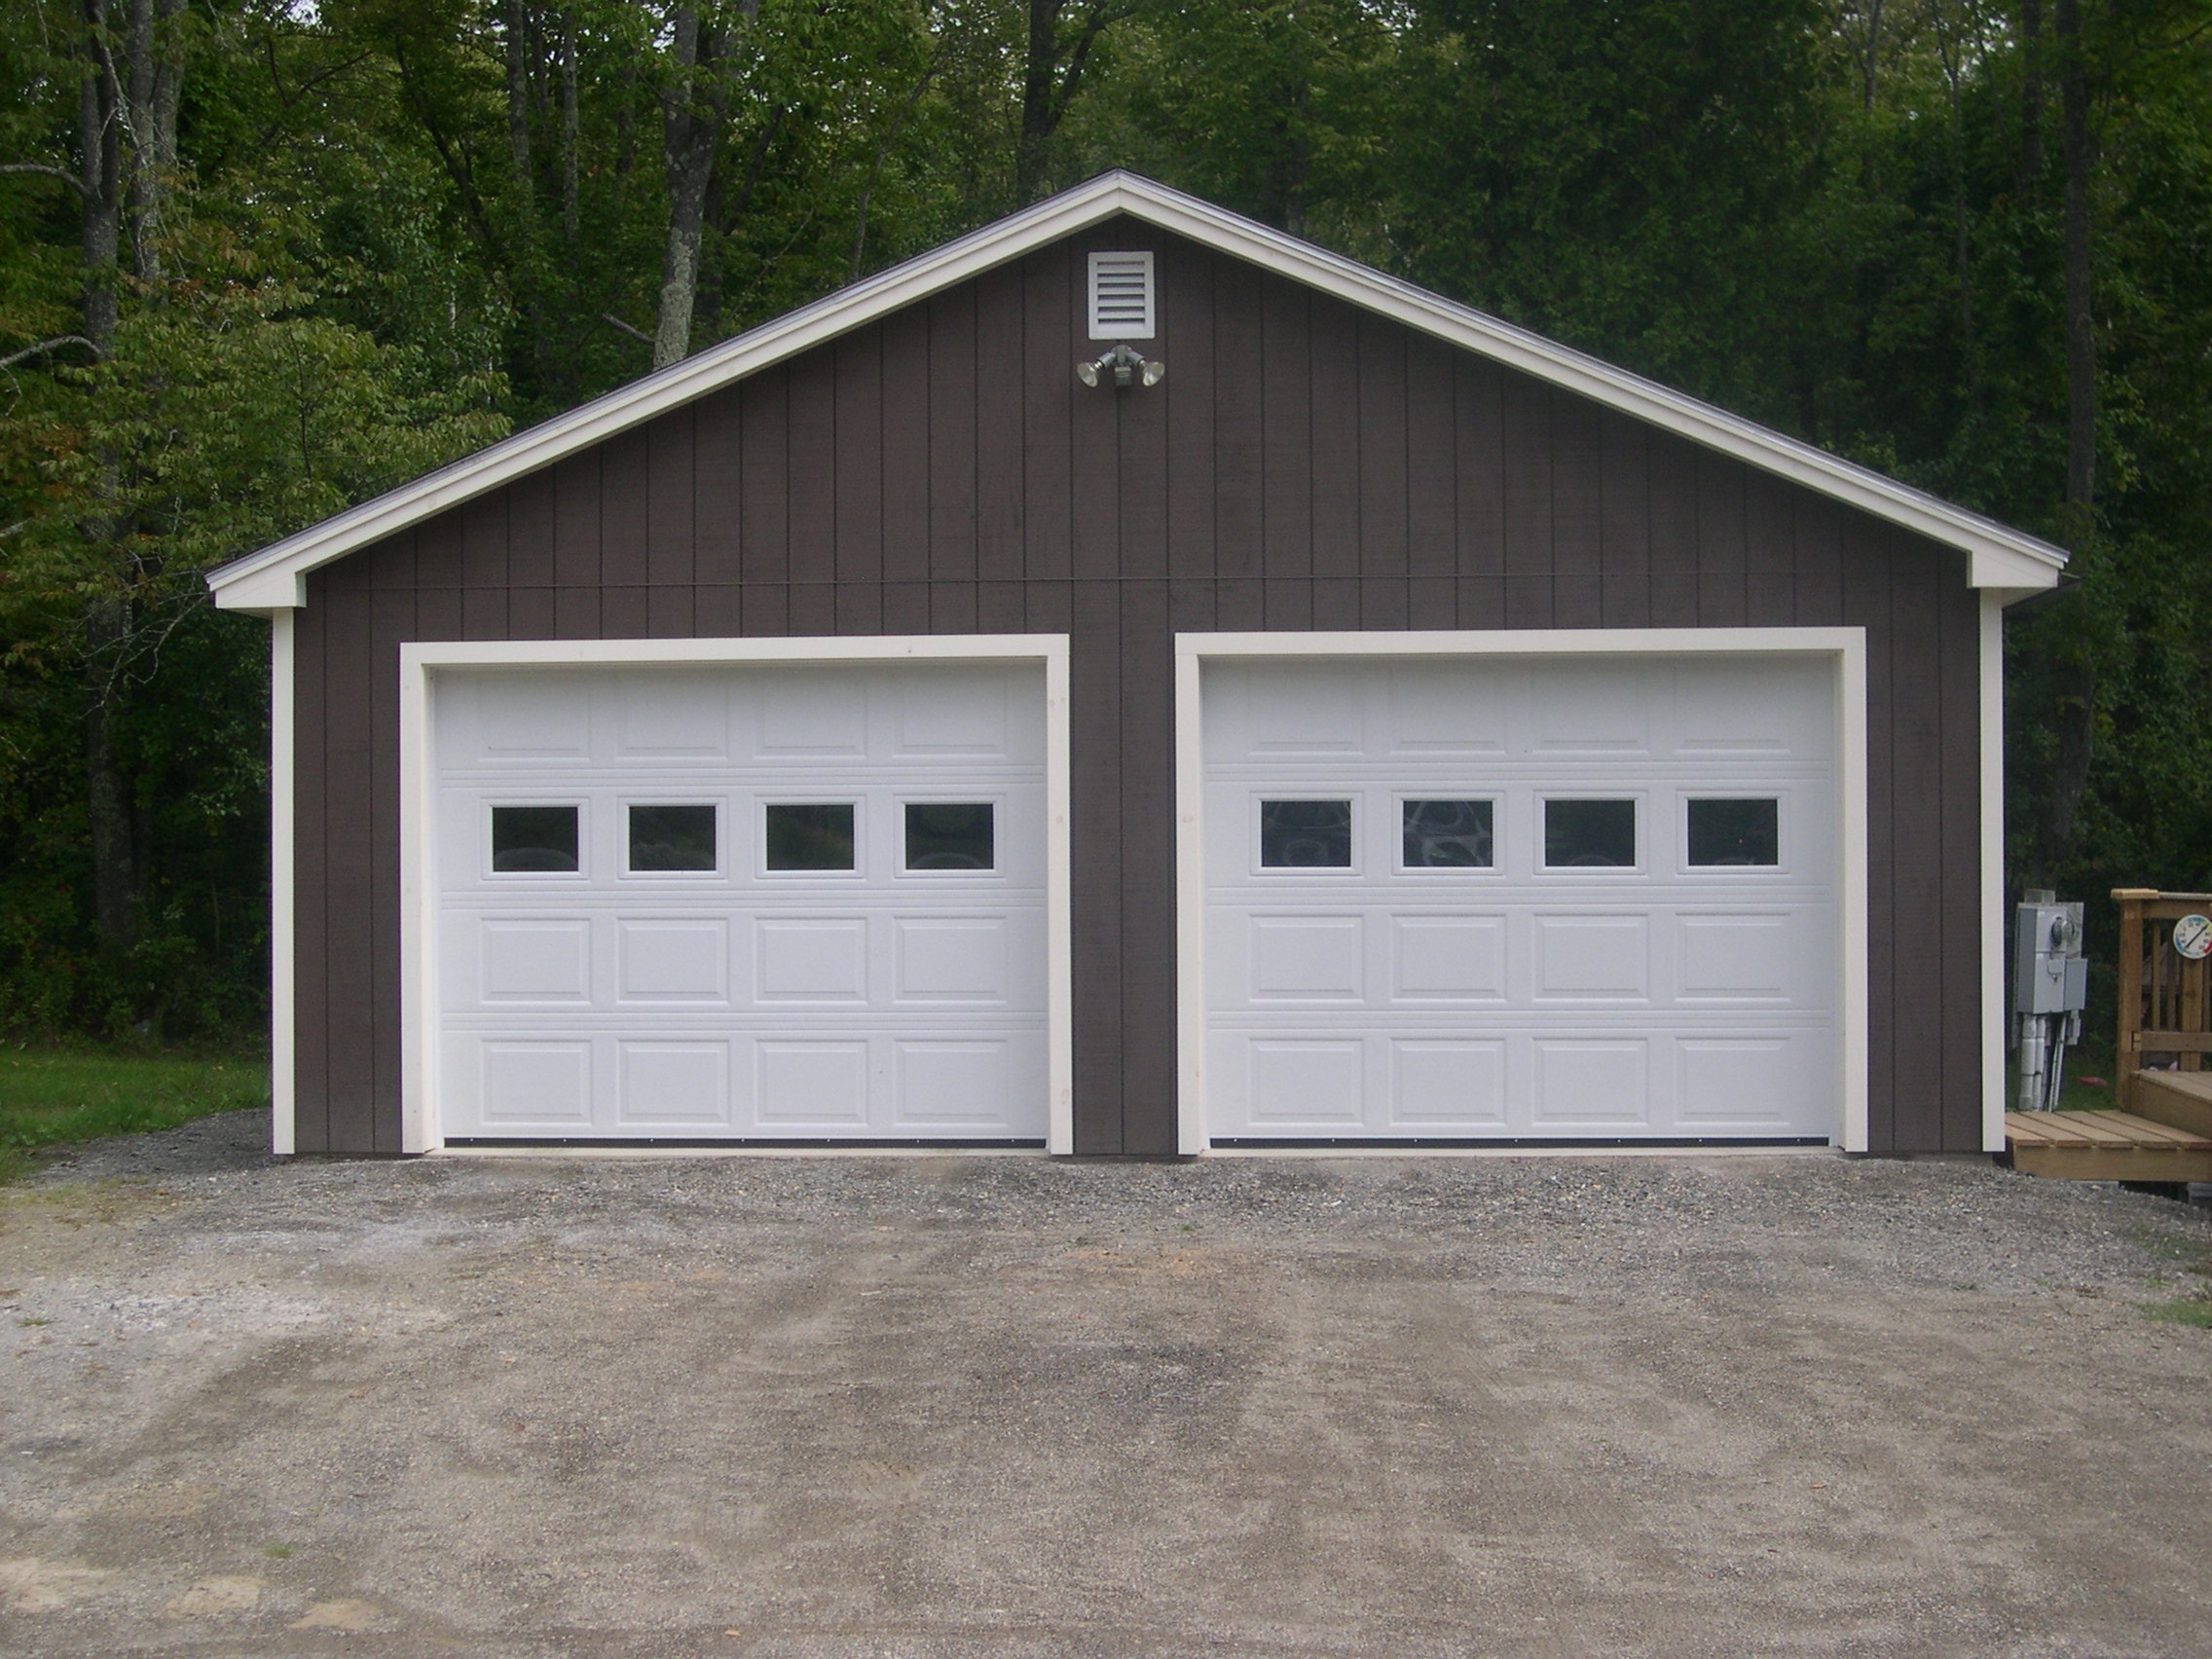 How much to build a garage on side of the house uk for Garage building cost